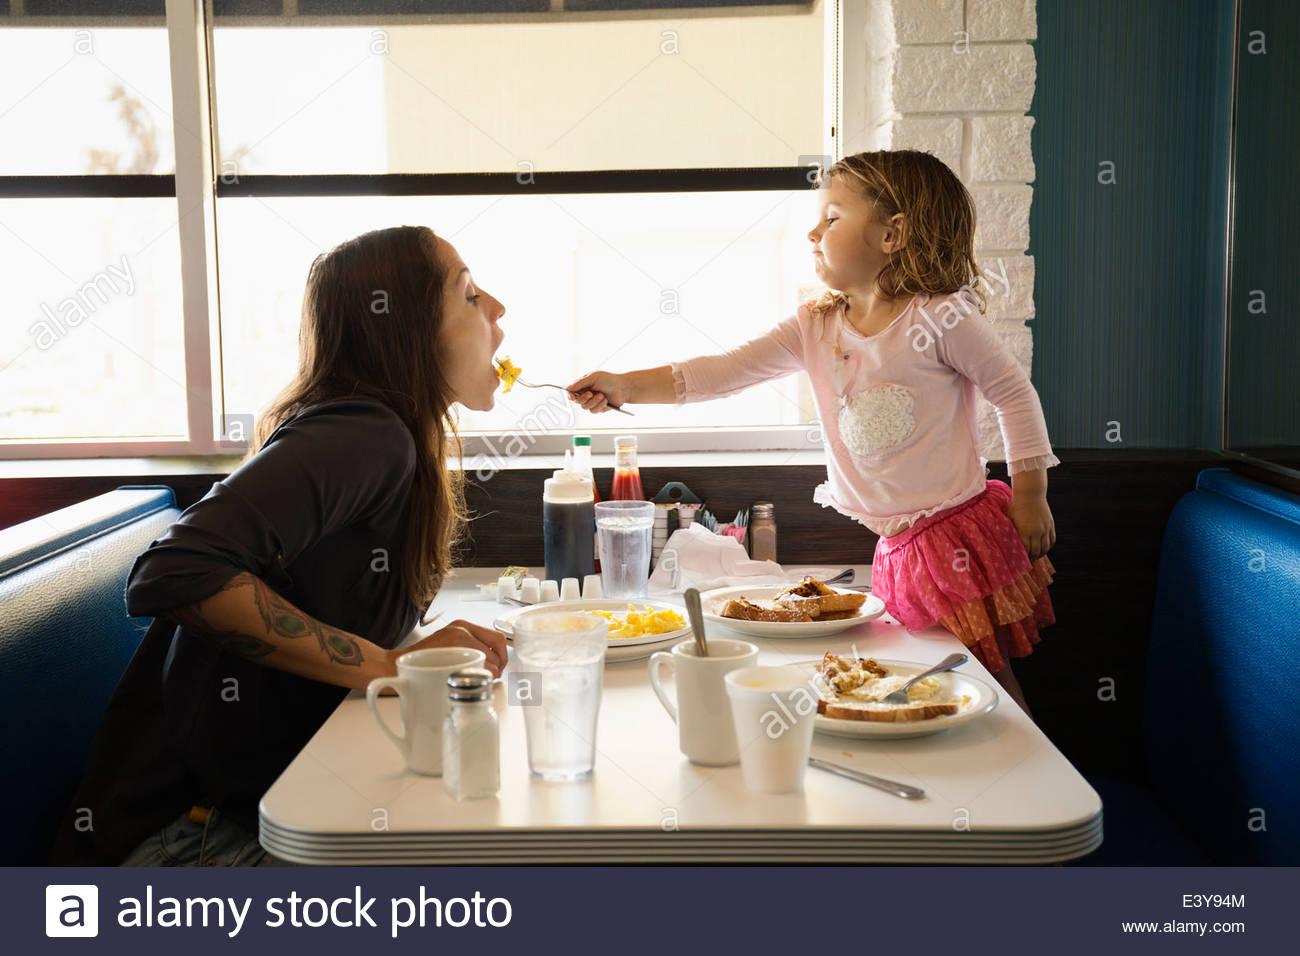 Tout-petit fille allaite in diner Photo Stock